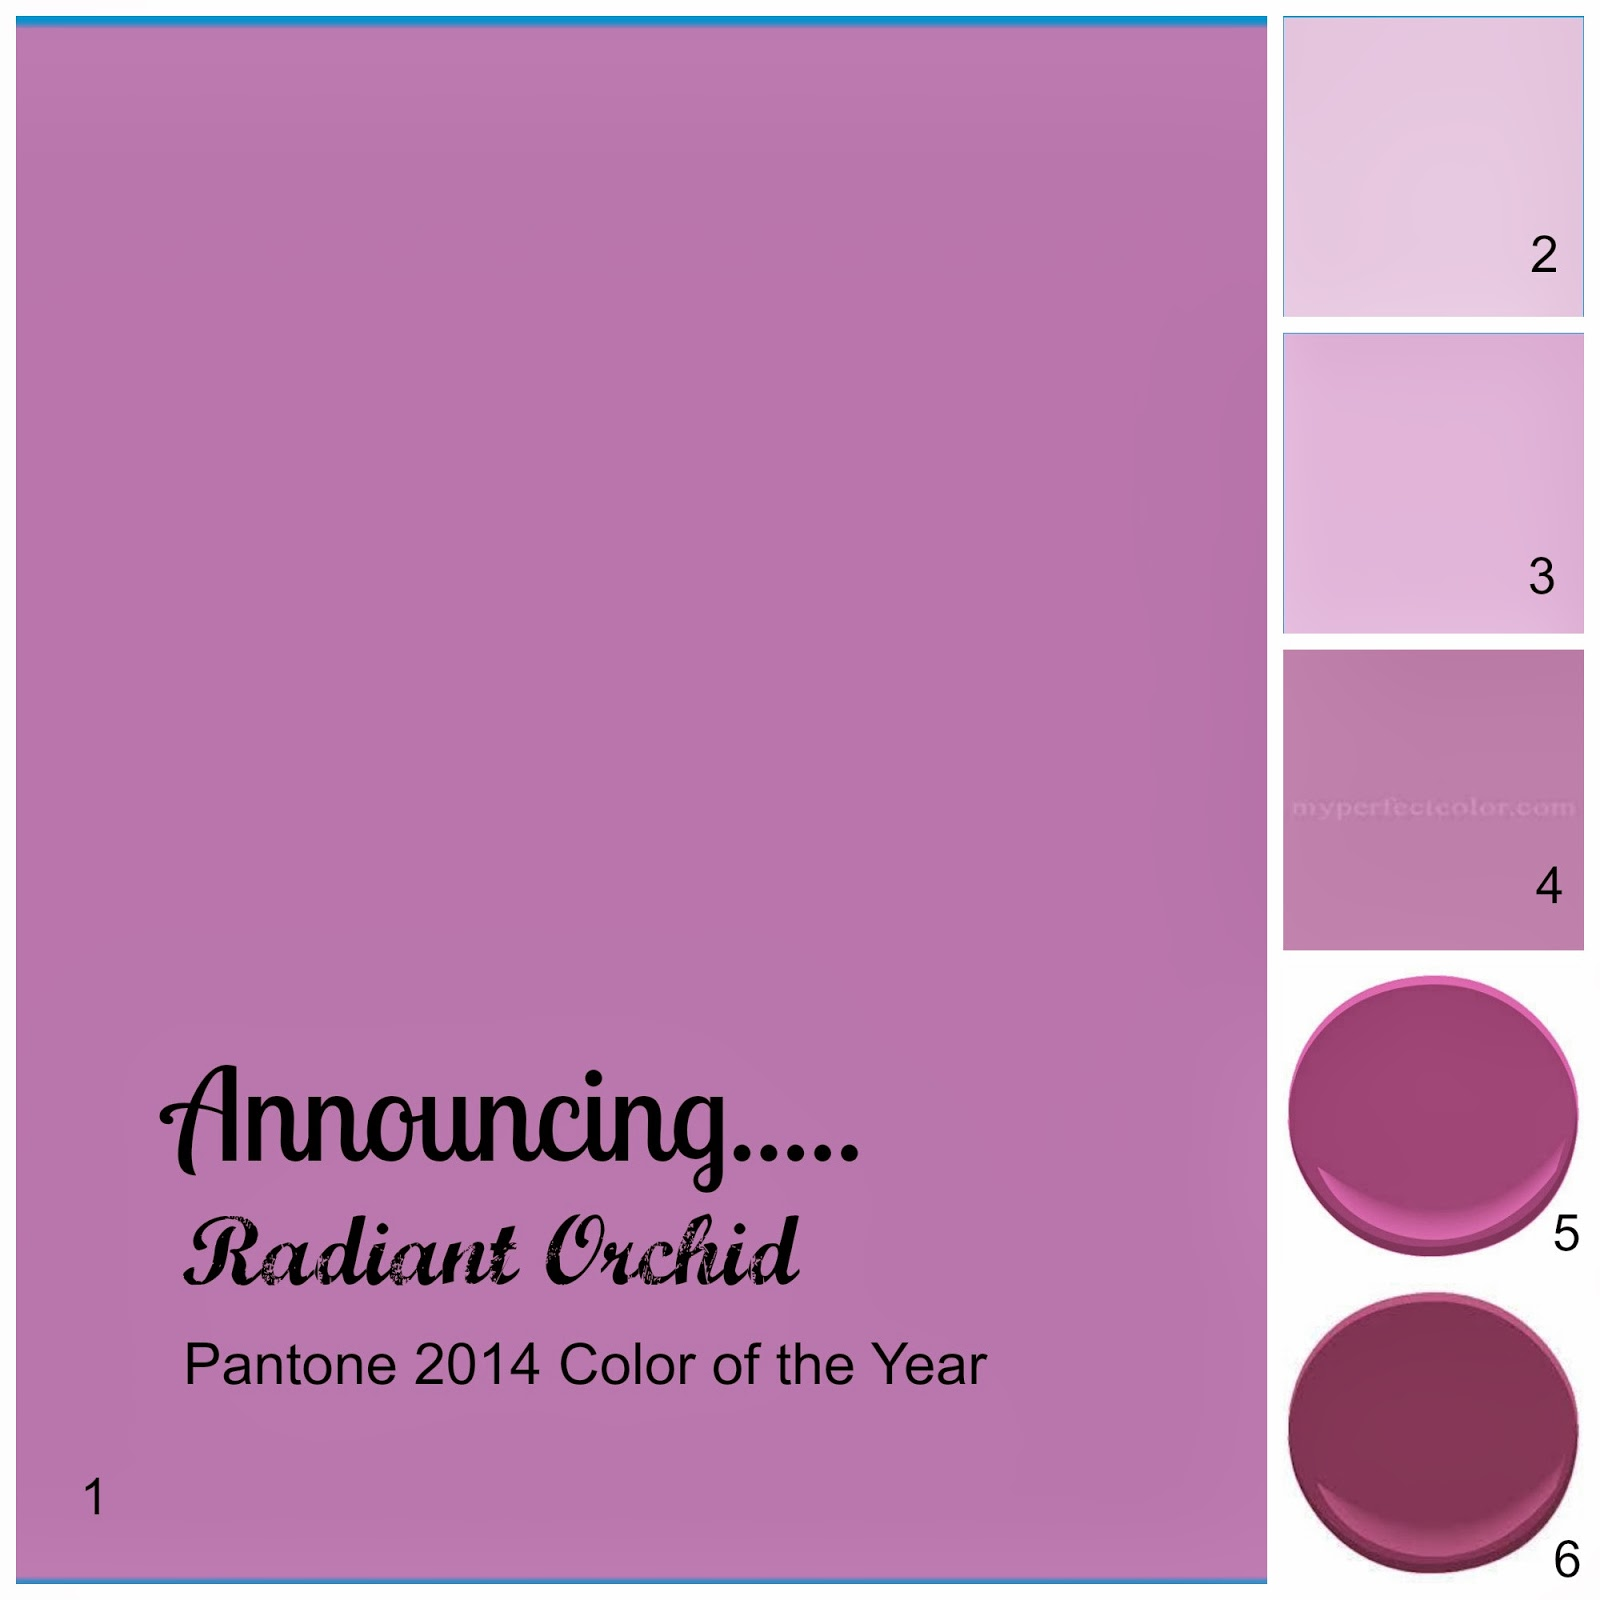 lisa mende design my top 5 radiant orchid paint colors pantone